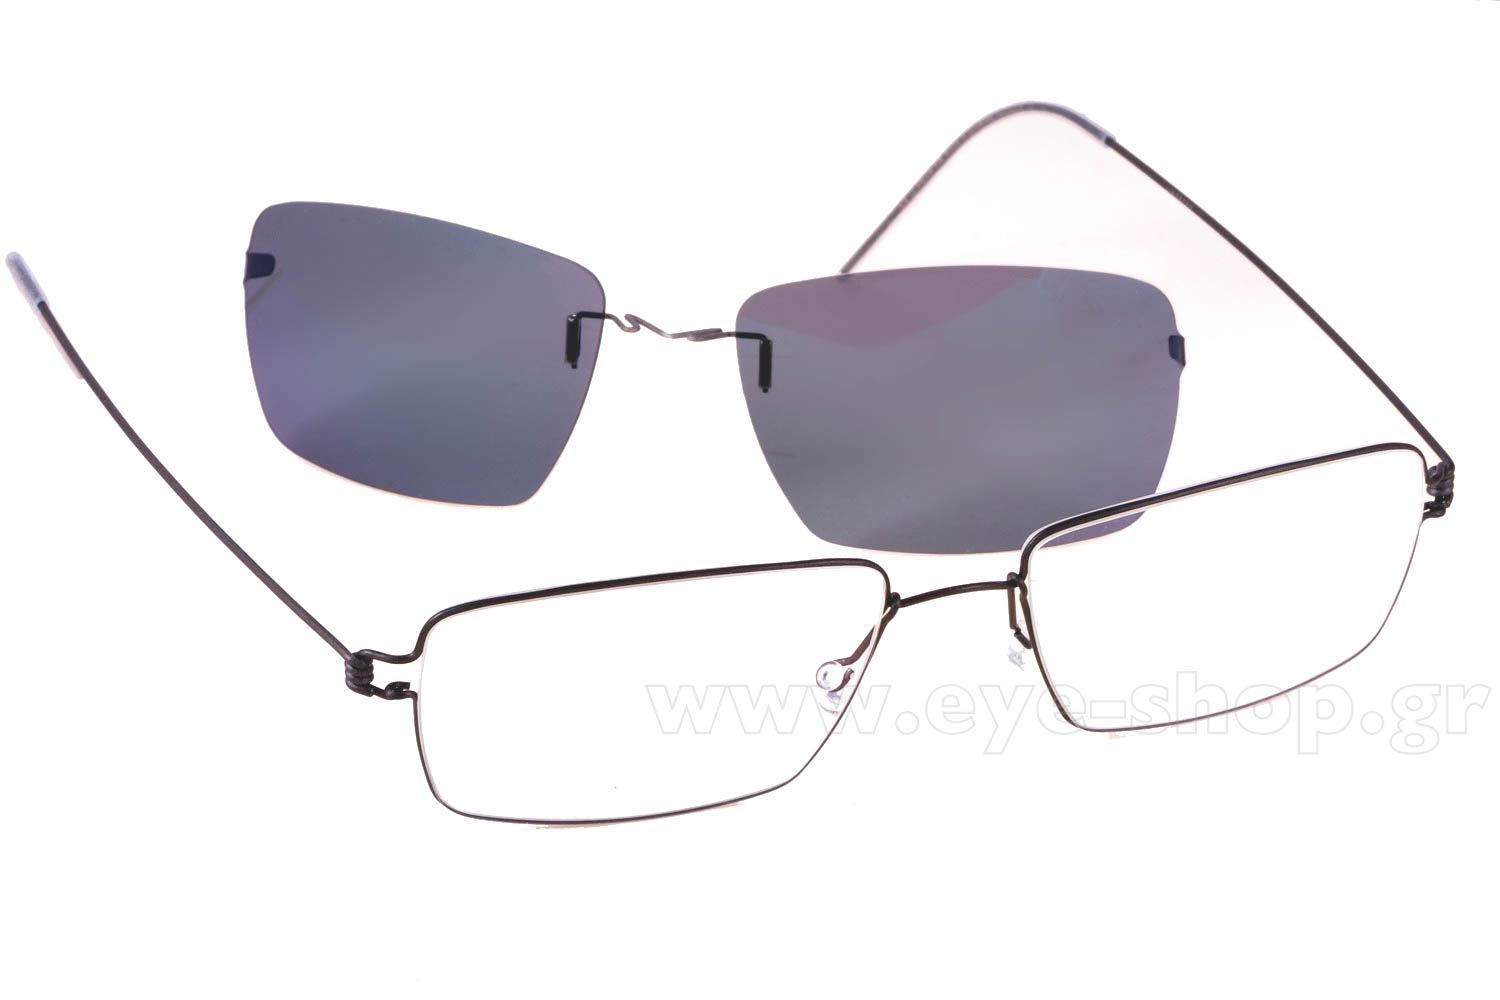 899908e788a Enlarge colors discontinued glasses lindberg tim air jpg 1500x1000 Lindberg  air